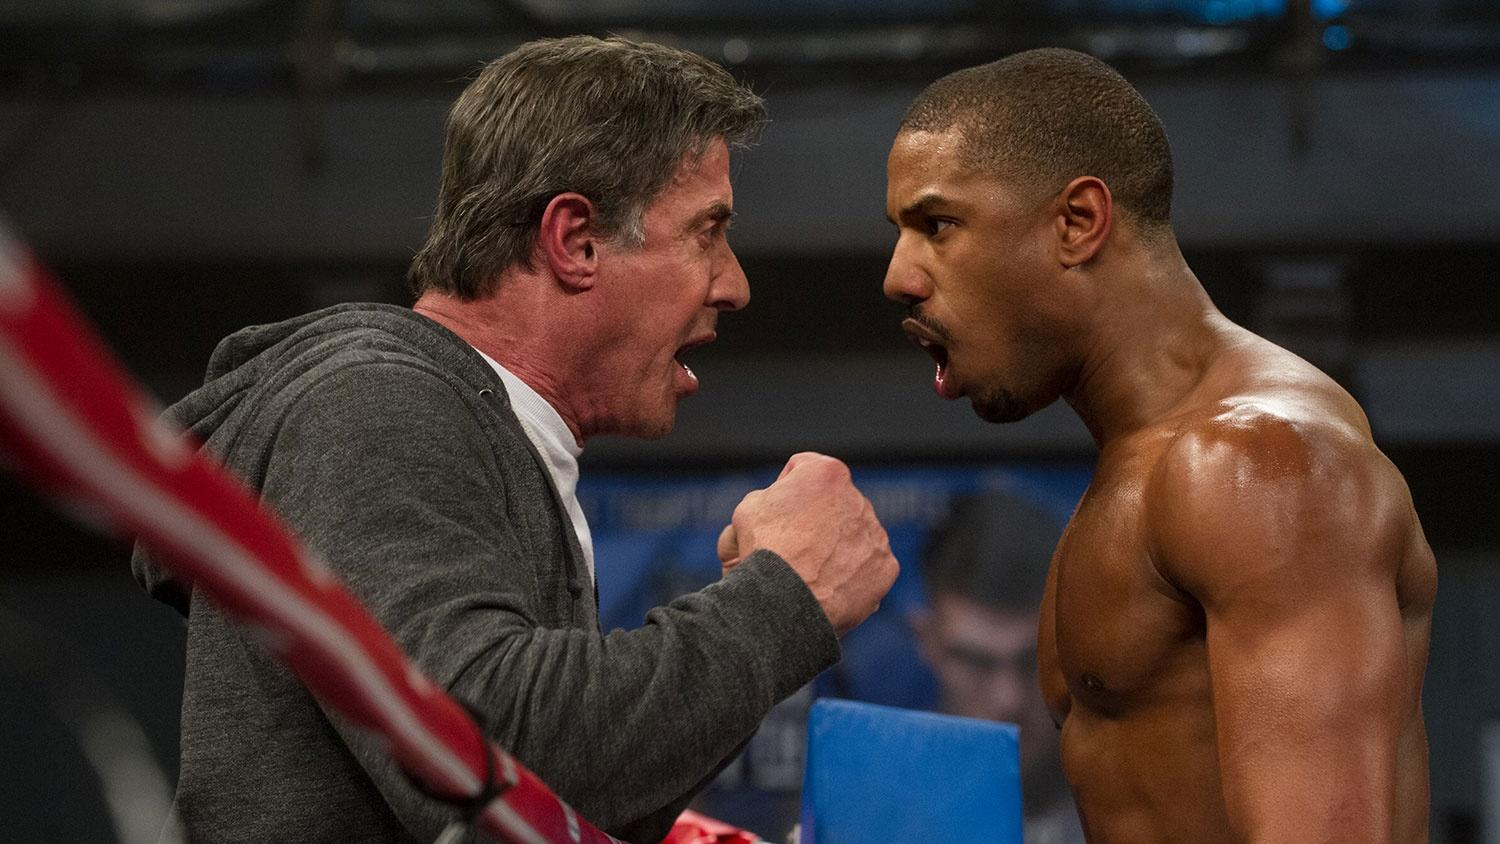 Box office hits and misses: Creed goes the distance and Mockingjay survives another week